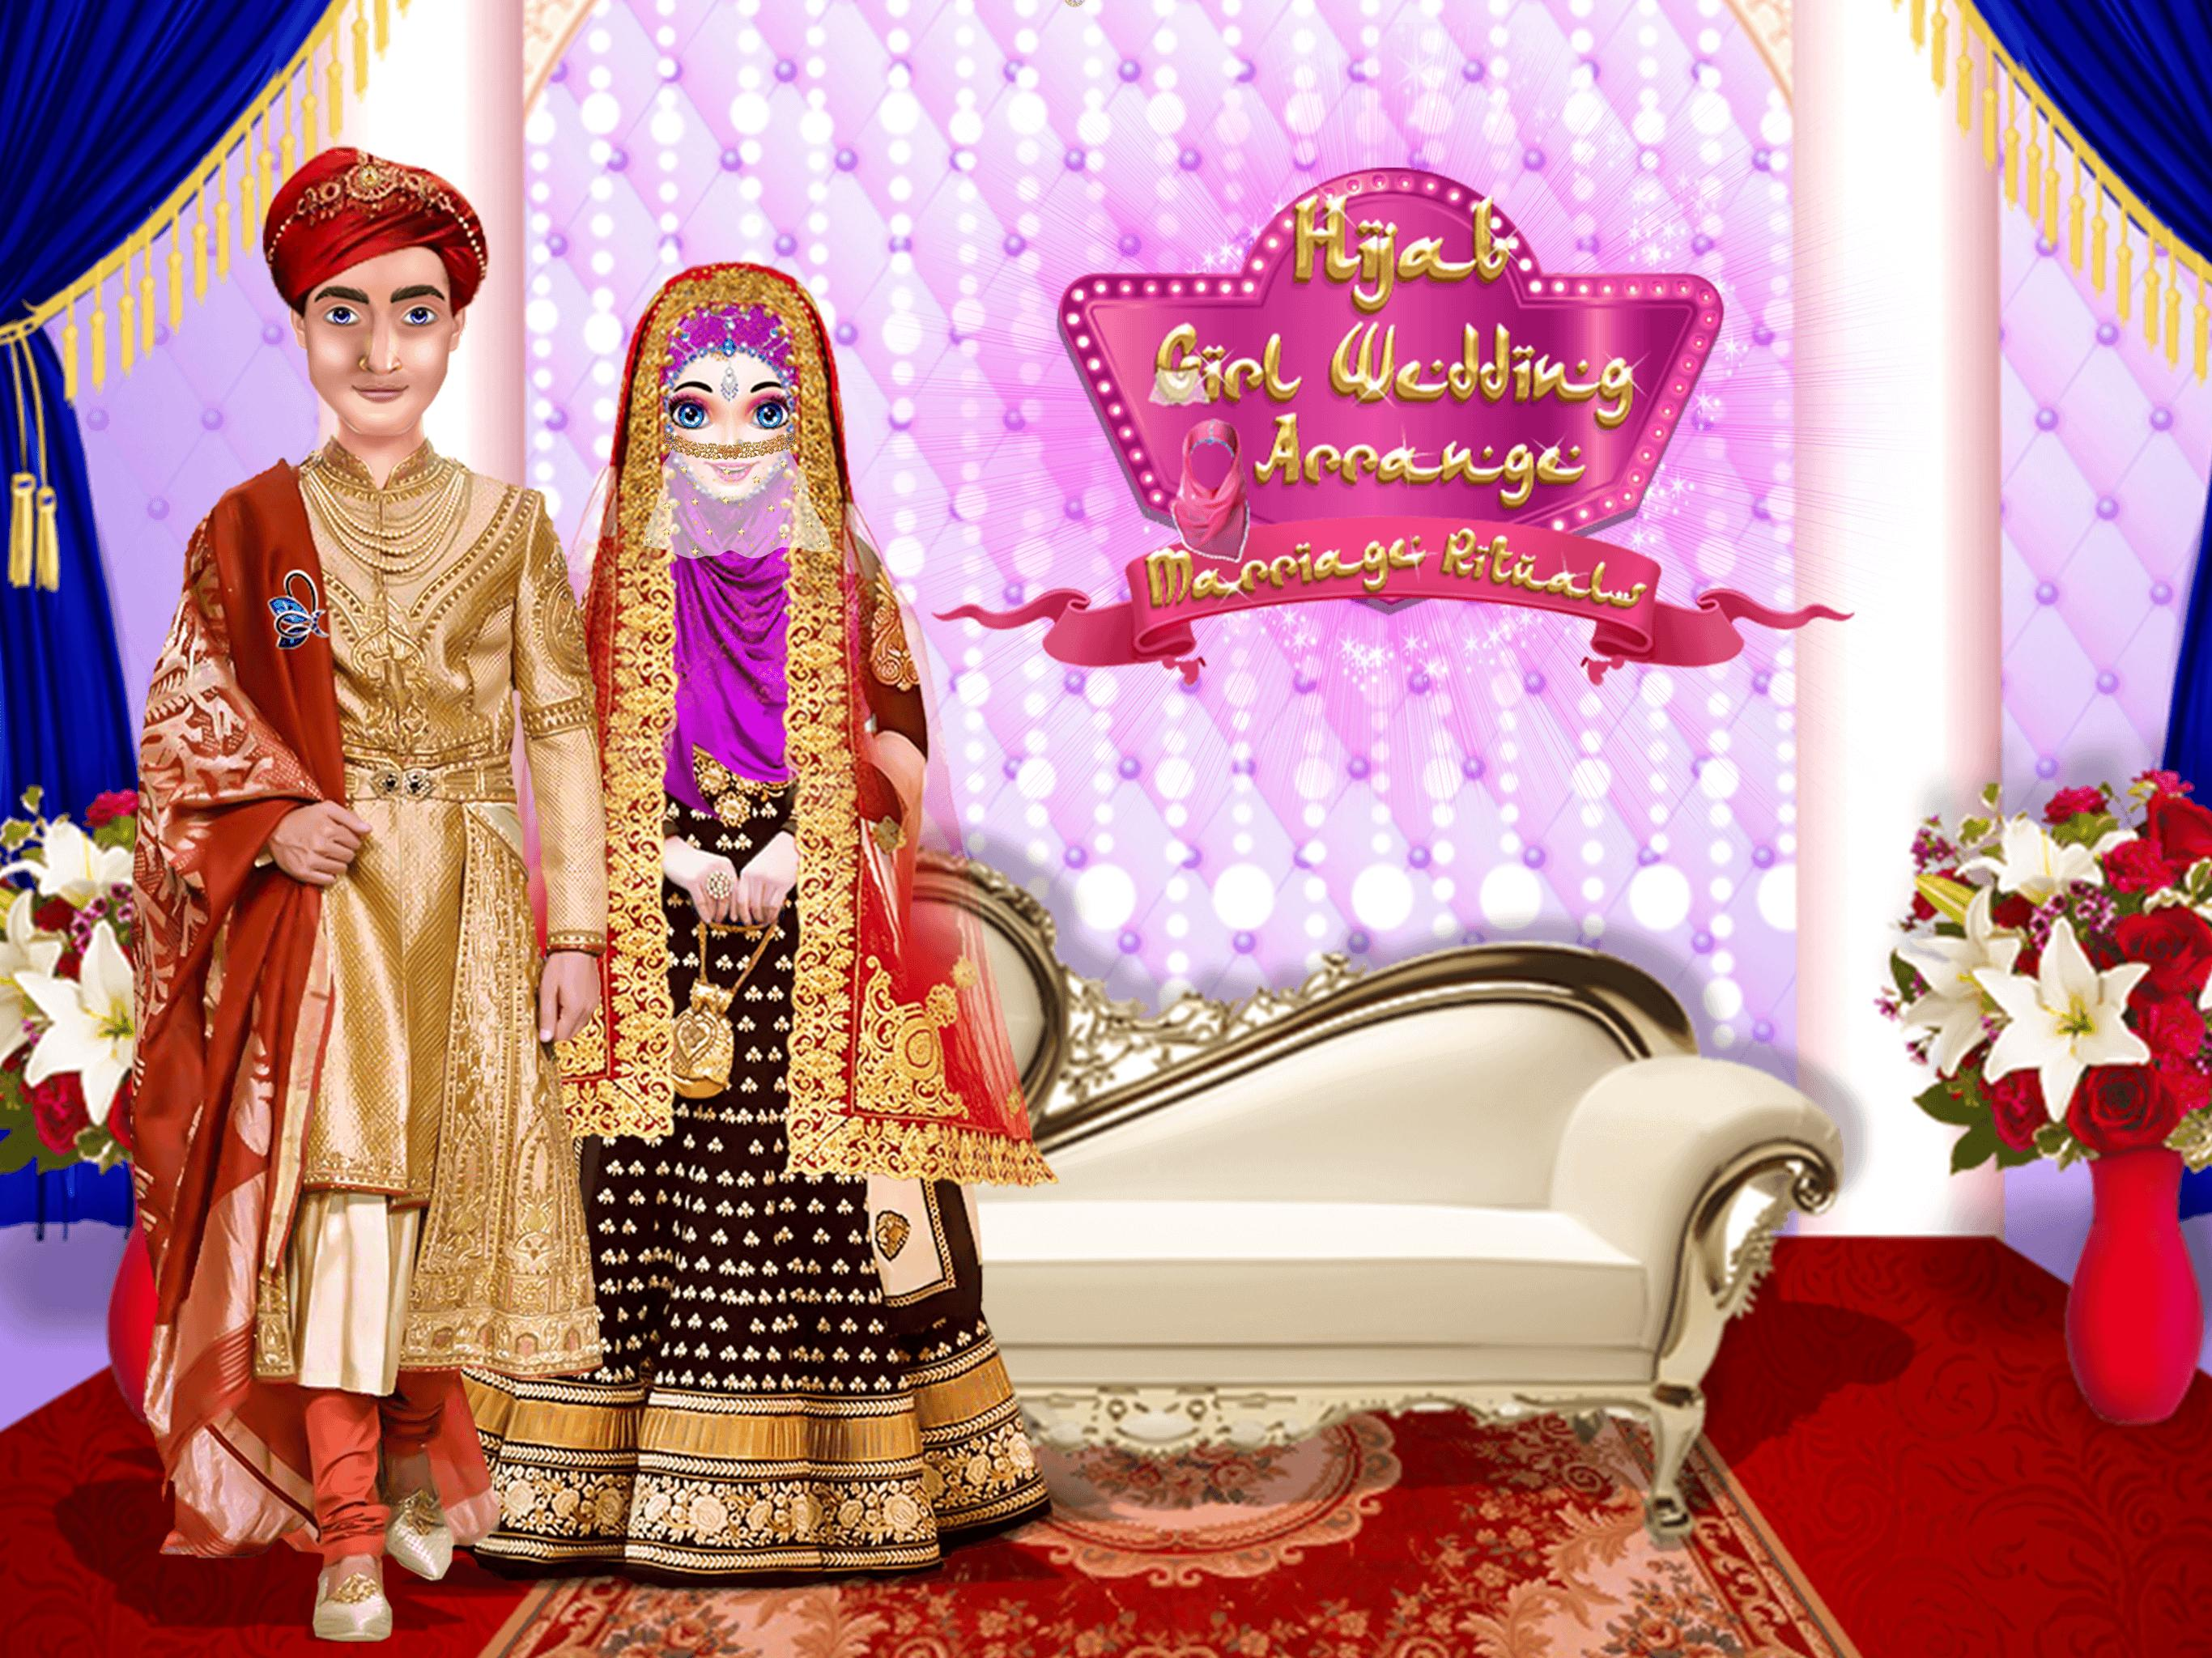 Hijab Girl Wedding - Arrange Marriage Rituals for Android